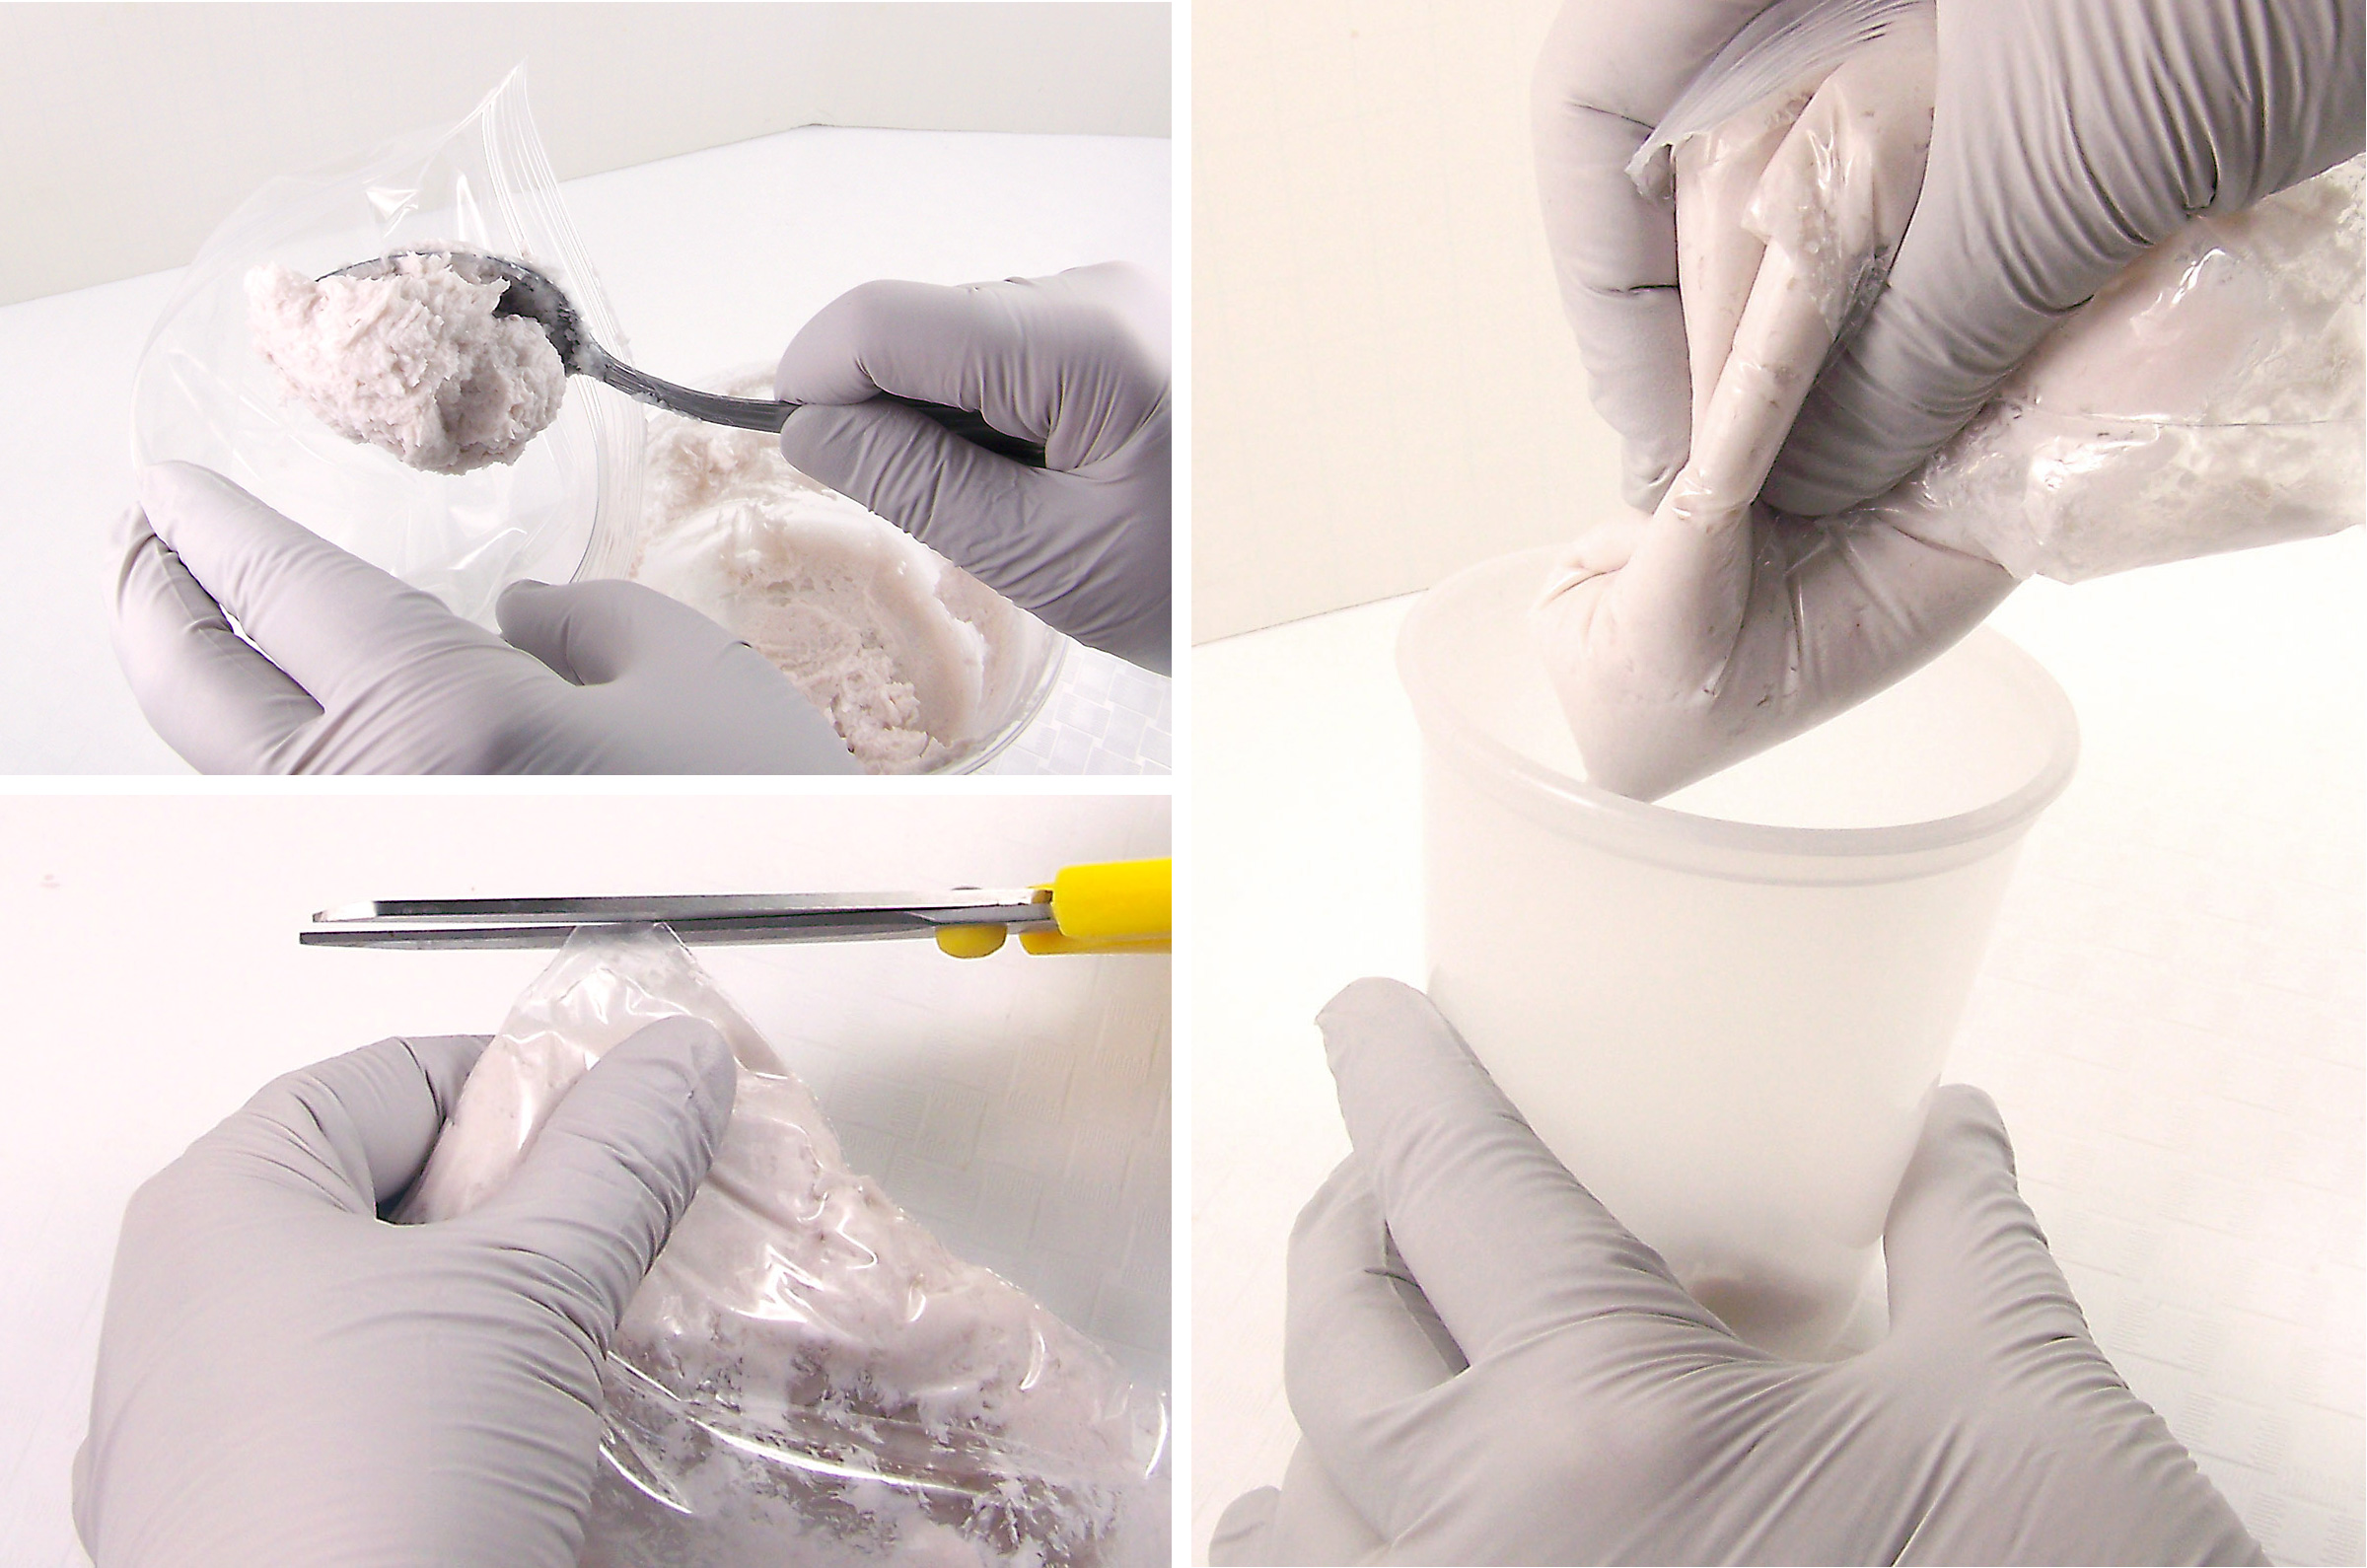 use plastic bag to squeeze mixture into tub